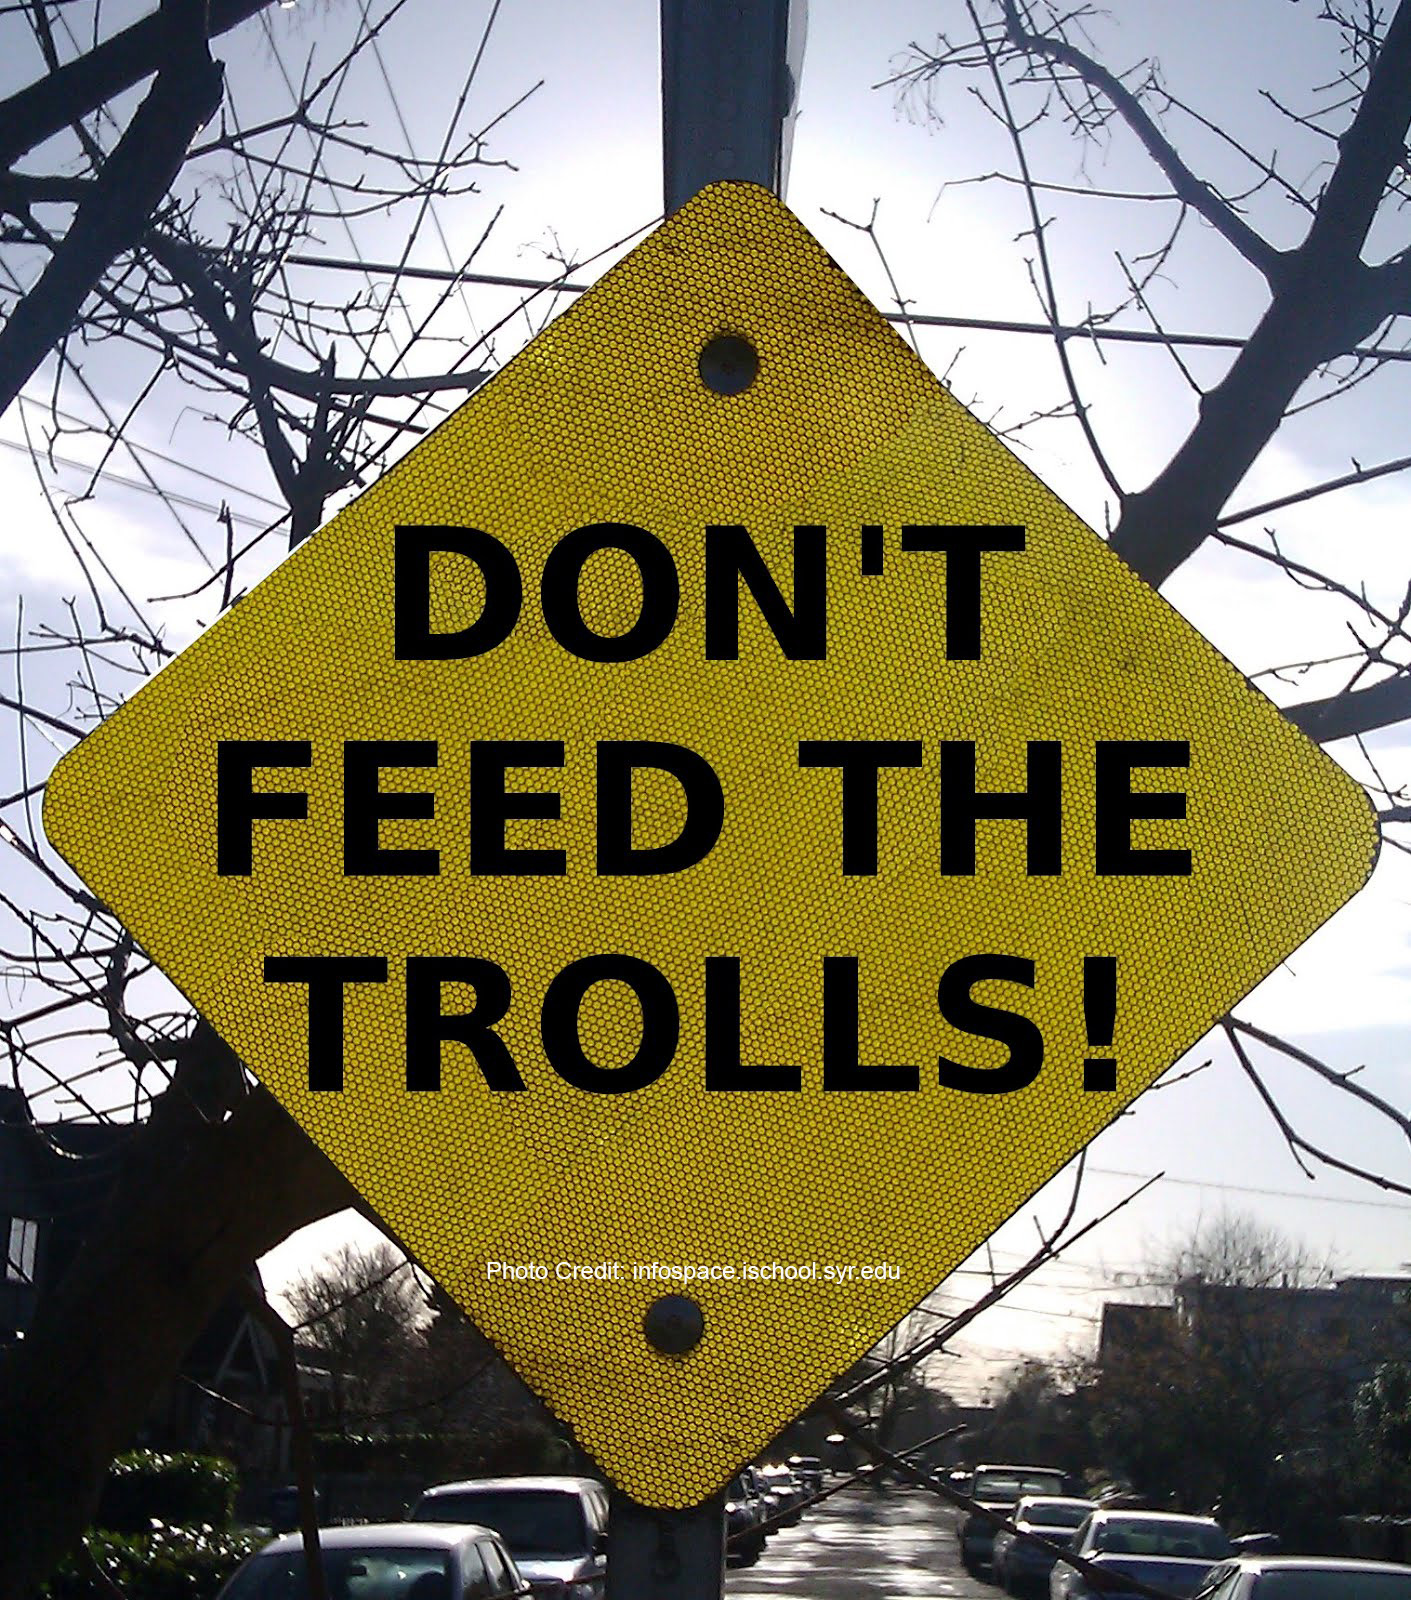 When trolls and propagandists occupy the Internet